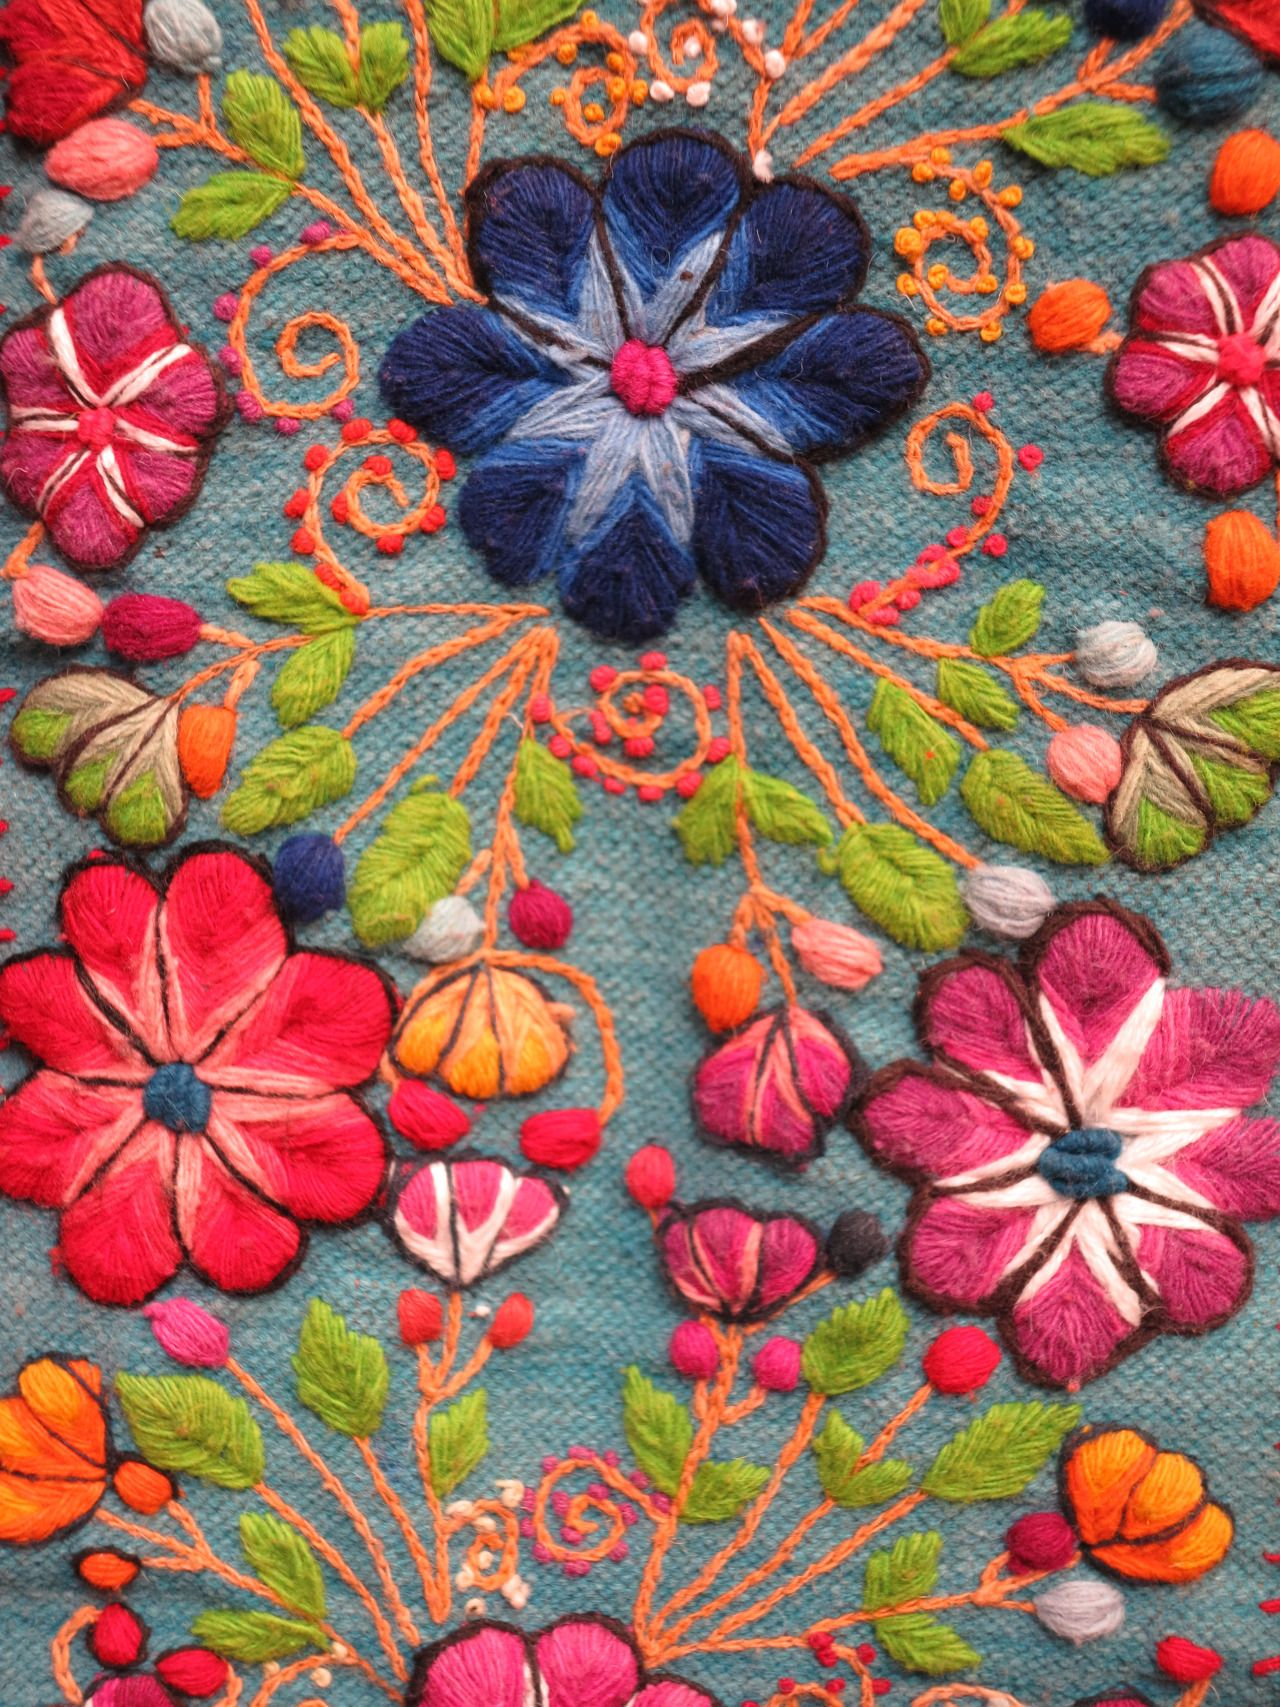 Visiting Cuzco: Peruvian Embroideries & Textiles by Maira Jimena (nothingisconstant)